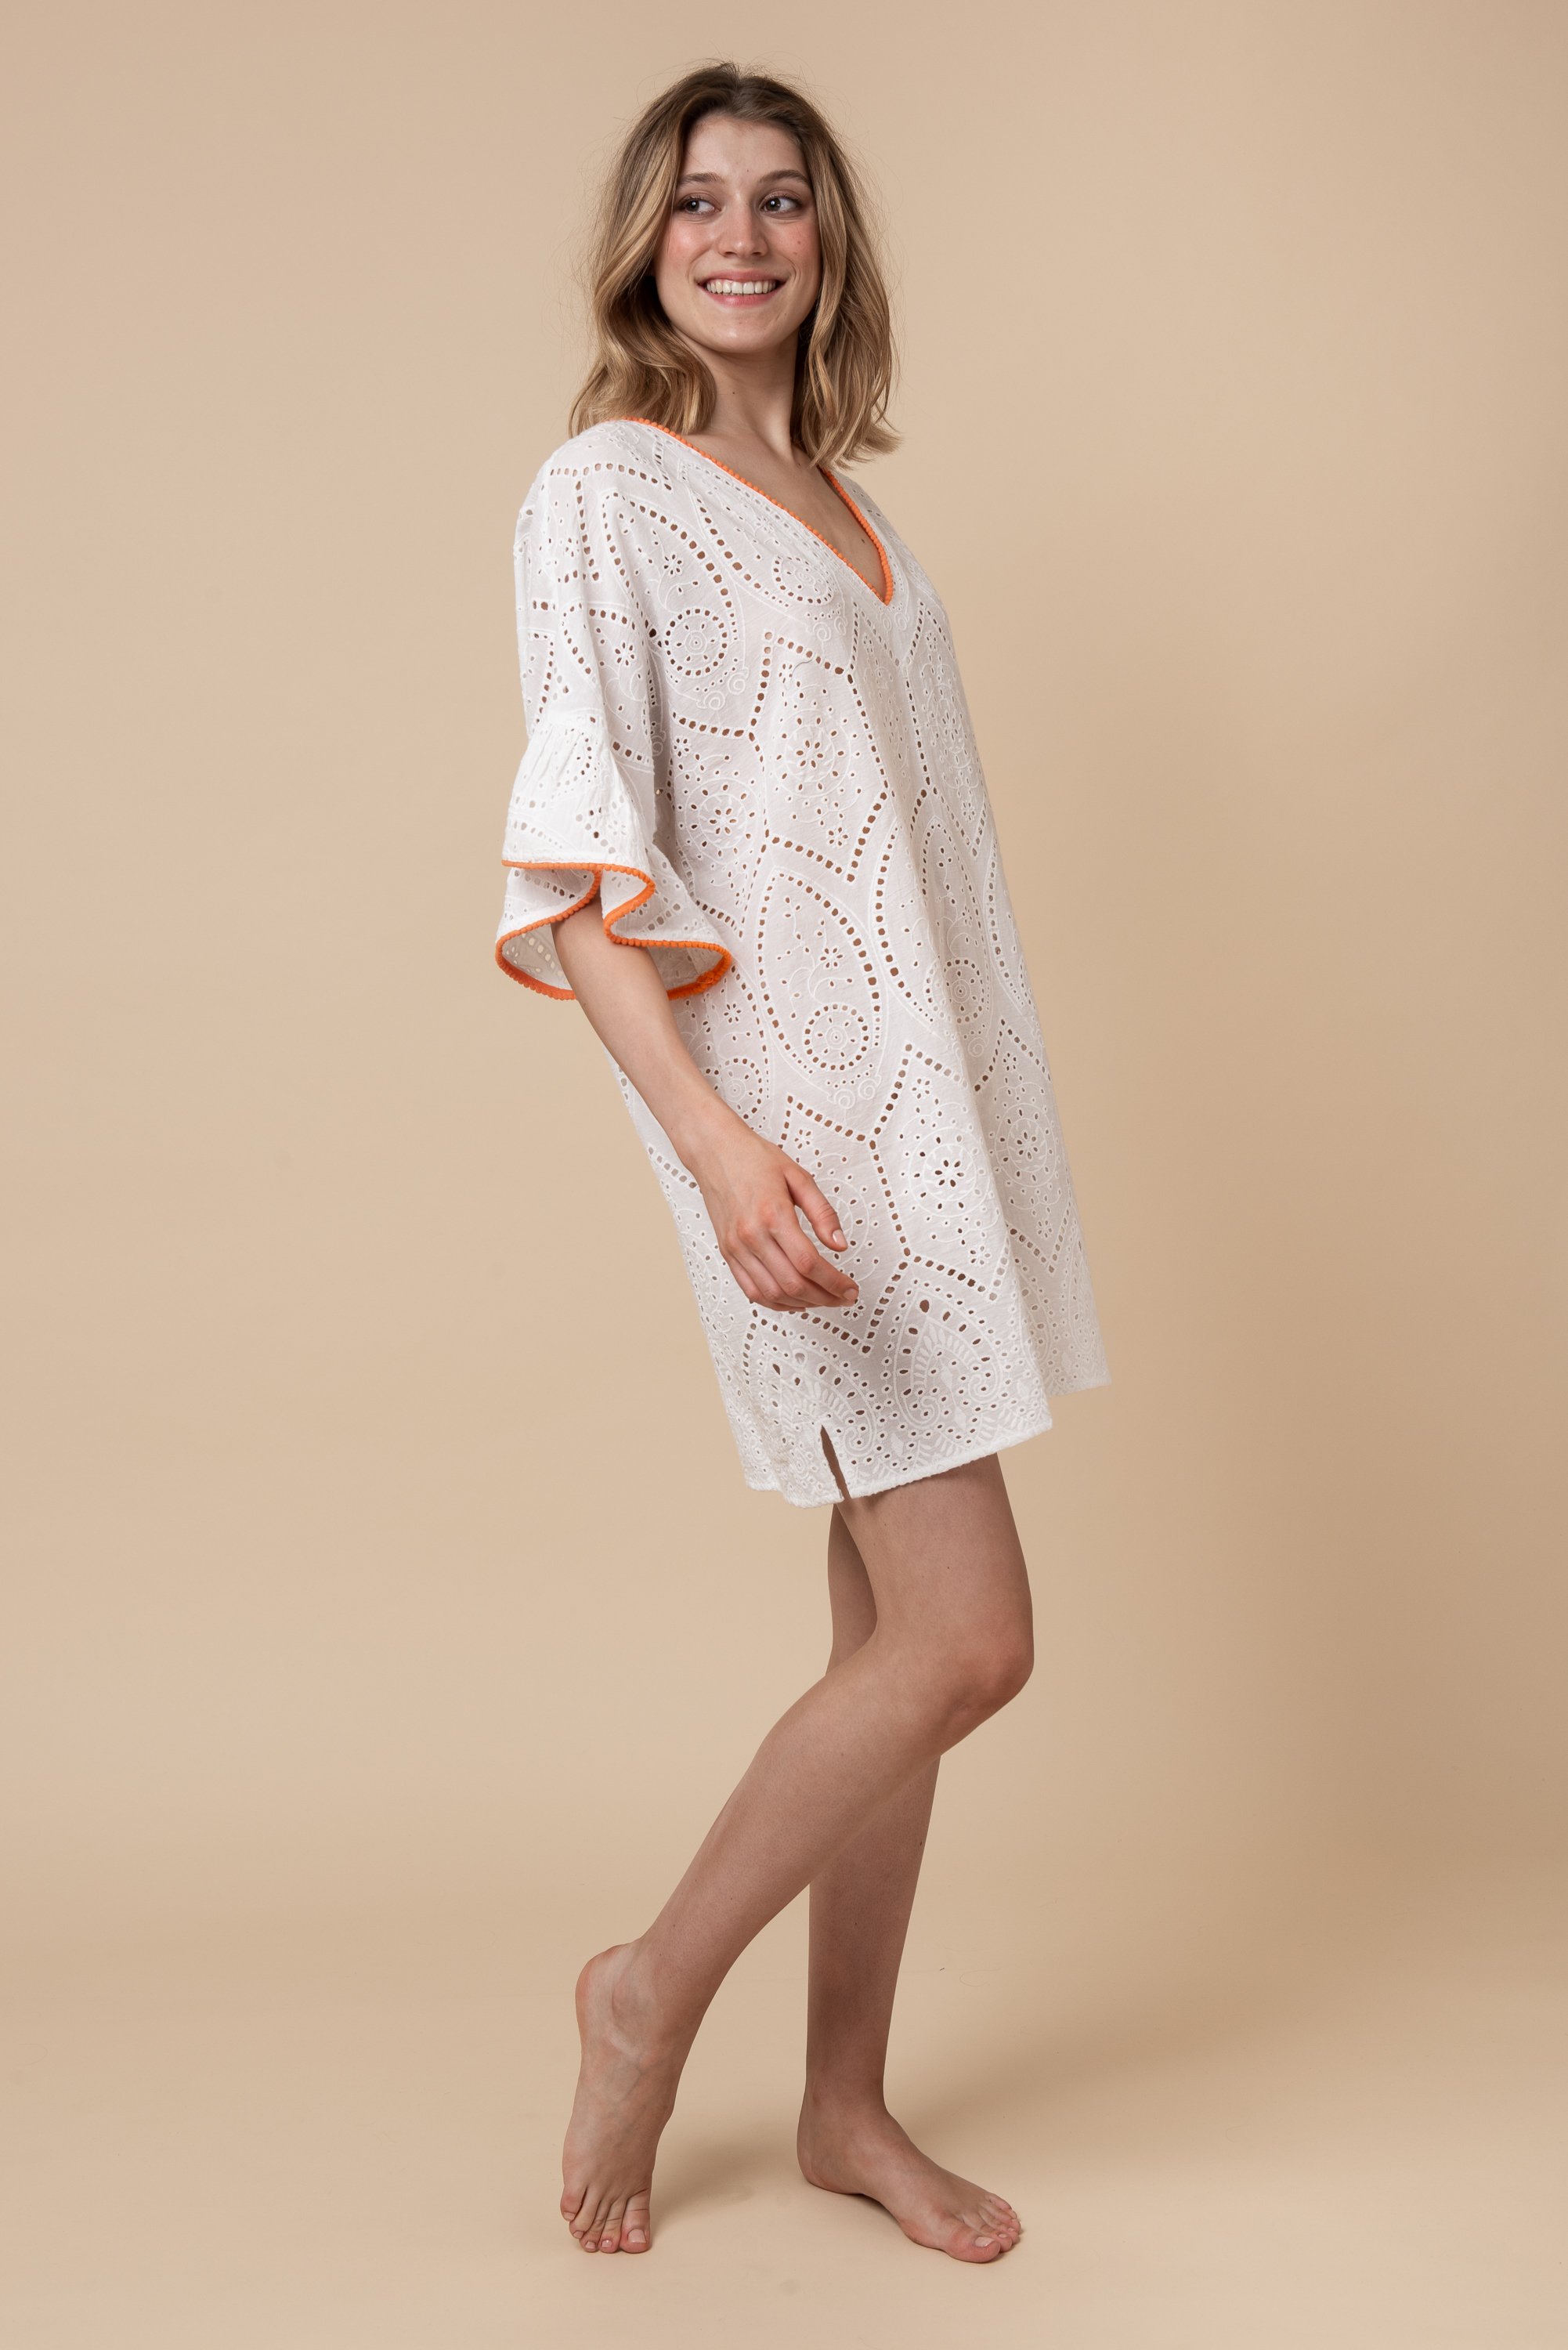 THE KIKI A white broderie anglaise one-size-fits-all pull-over beach kaftan designed to complement every body shape.